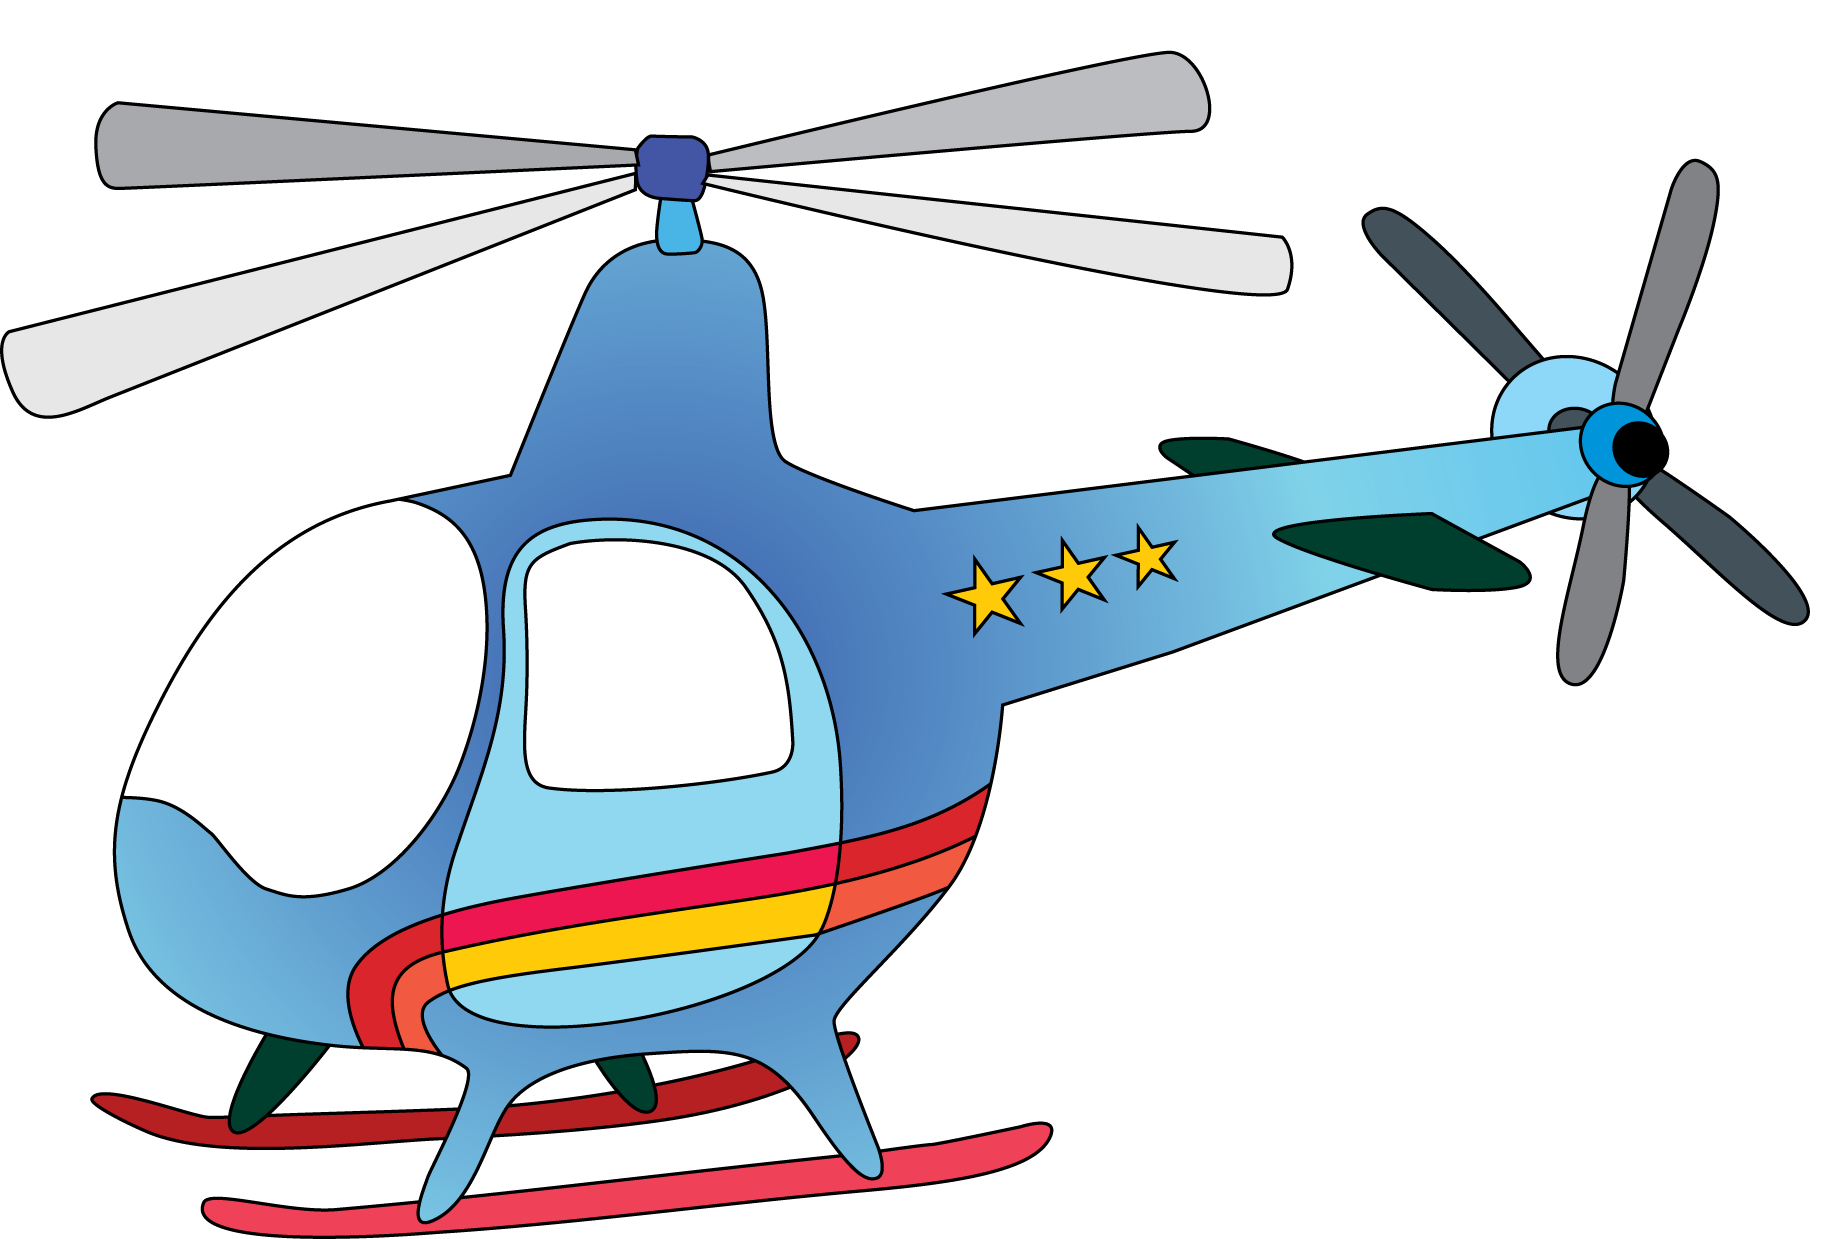 medium resolution of cute airplane clip art have about files nov cachedhelicopter clipart images graphics browse